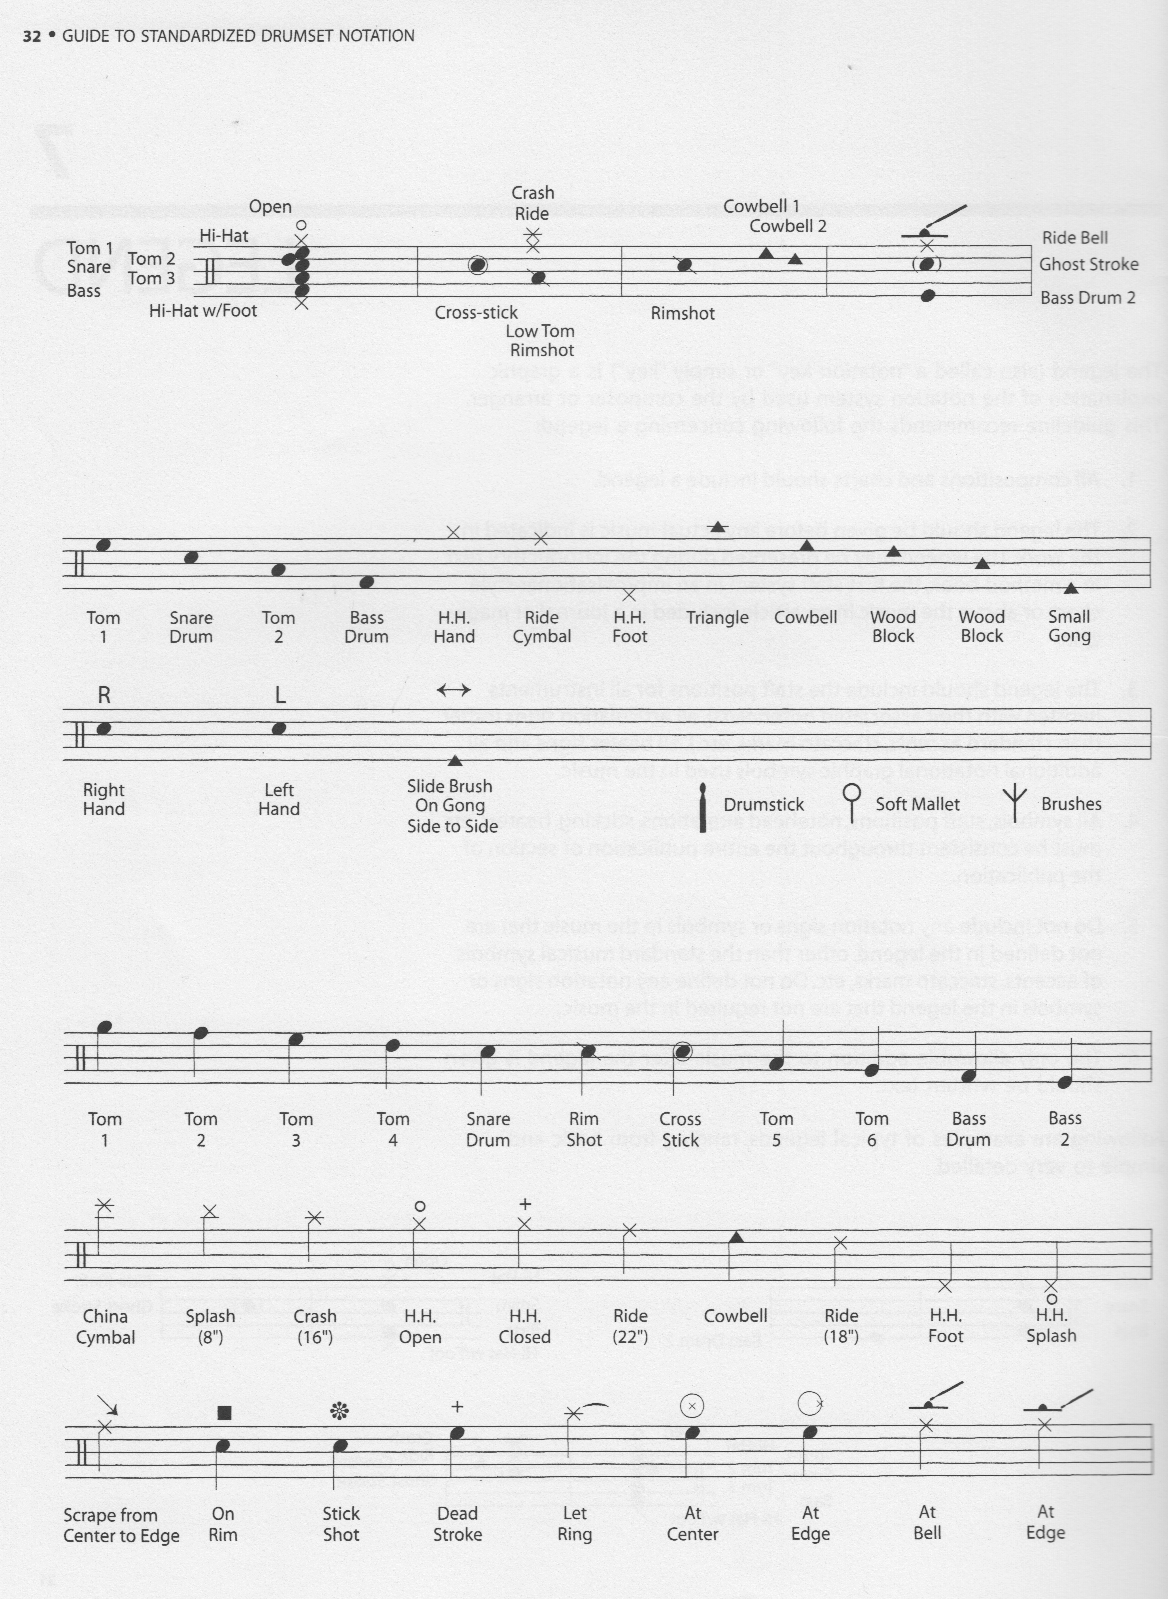 Changing the default 5-line drumset | MuseScore